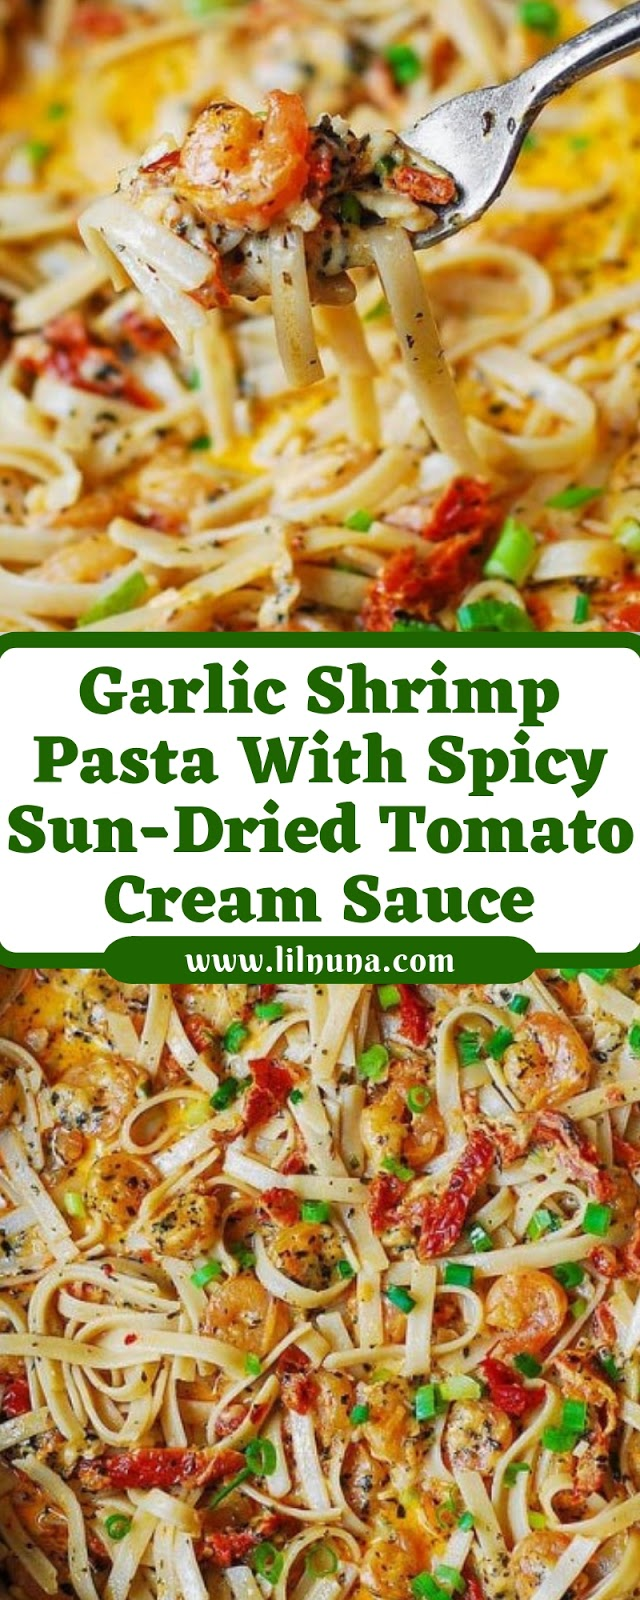 Garlic Shrimp Pasta With Spicy Sun-Dried Tomato Cream Sauce